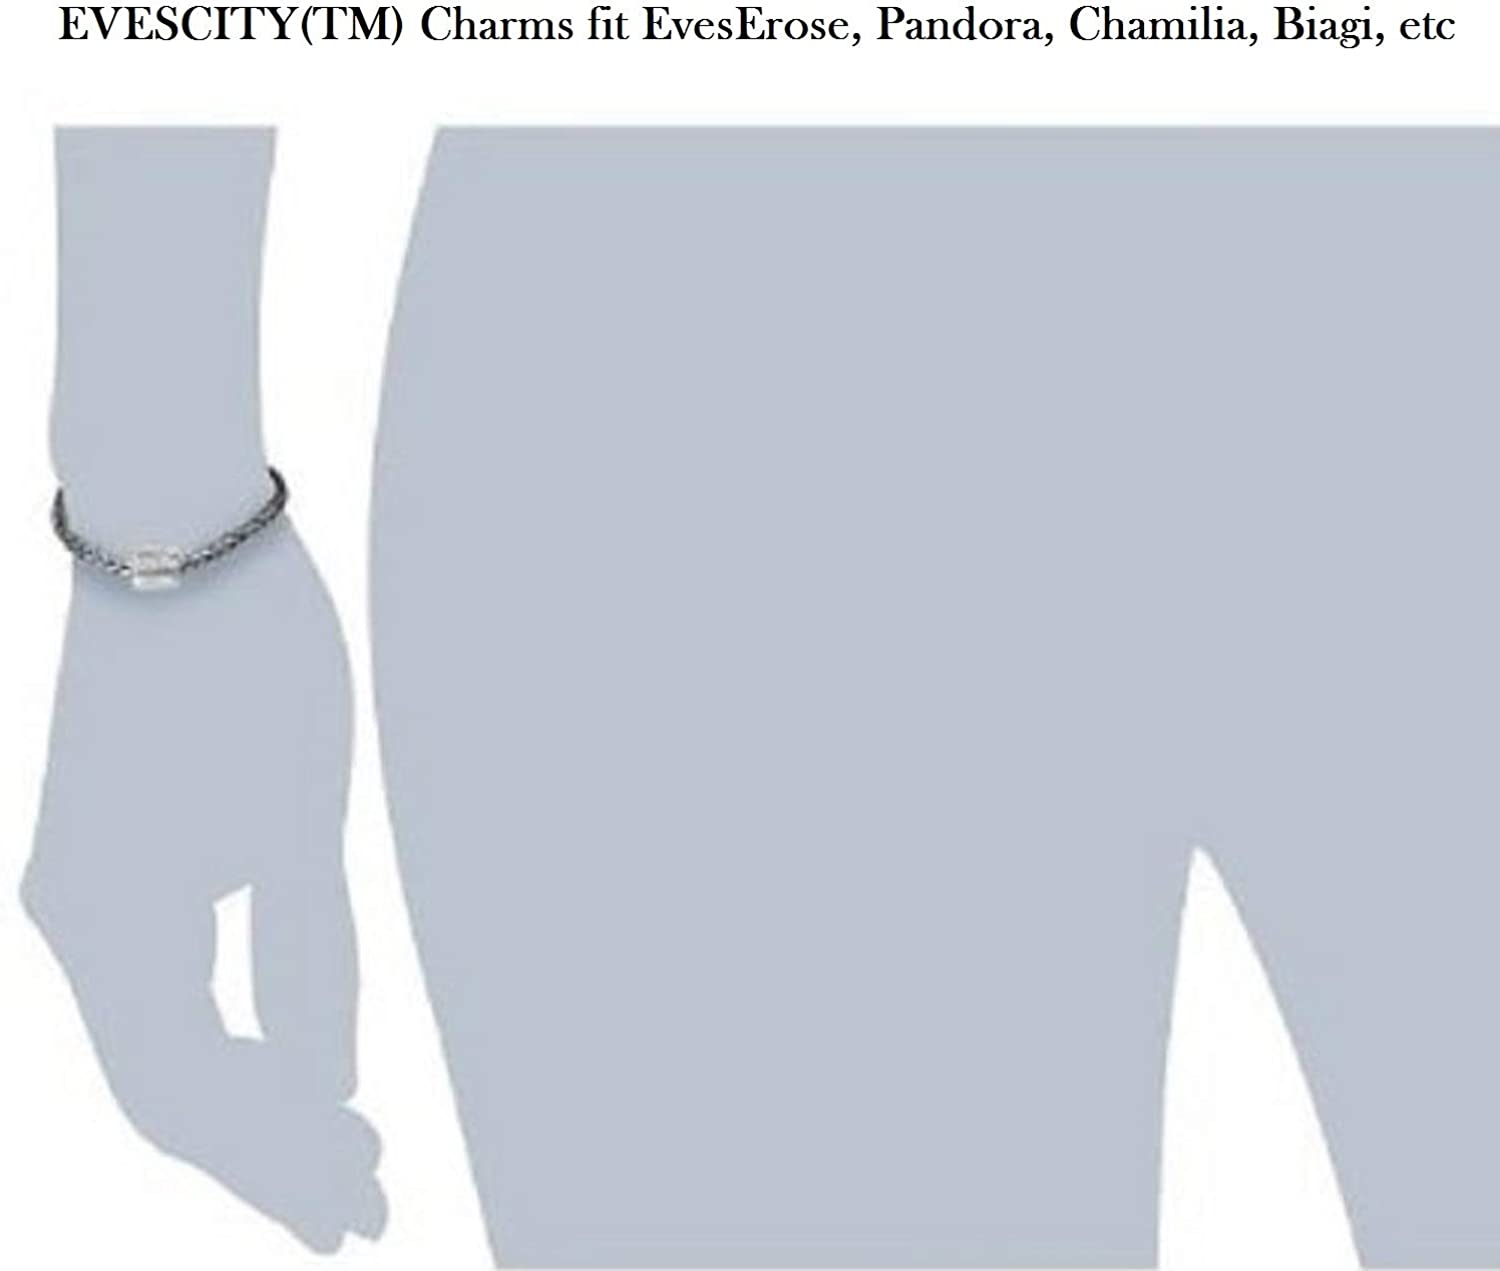 EVESCITY 925 Sterling Silver Lucky Family Dad Mom & Son Daughter Beads for Charm Bracelets for Charm Bracelets Like Pandora & Others ♥ Best Jewelry Gifts for Fathers Day ♥